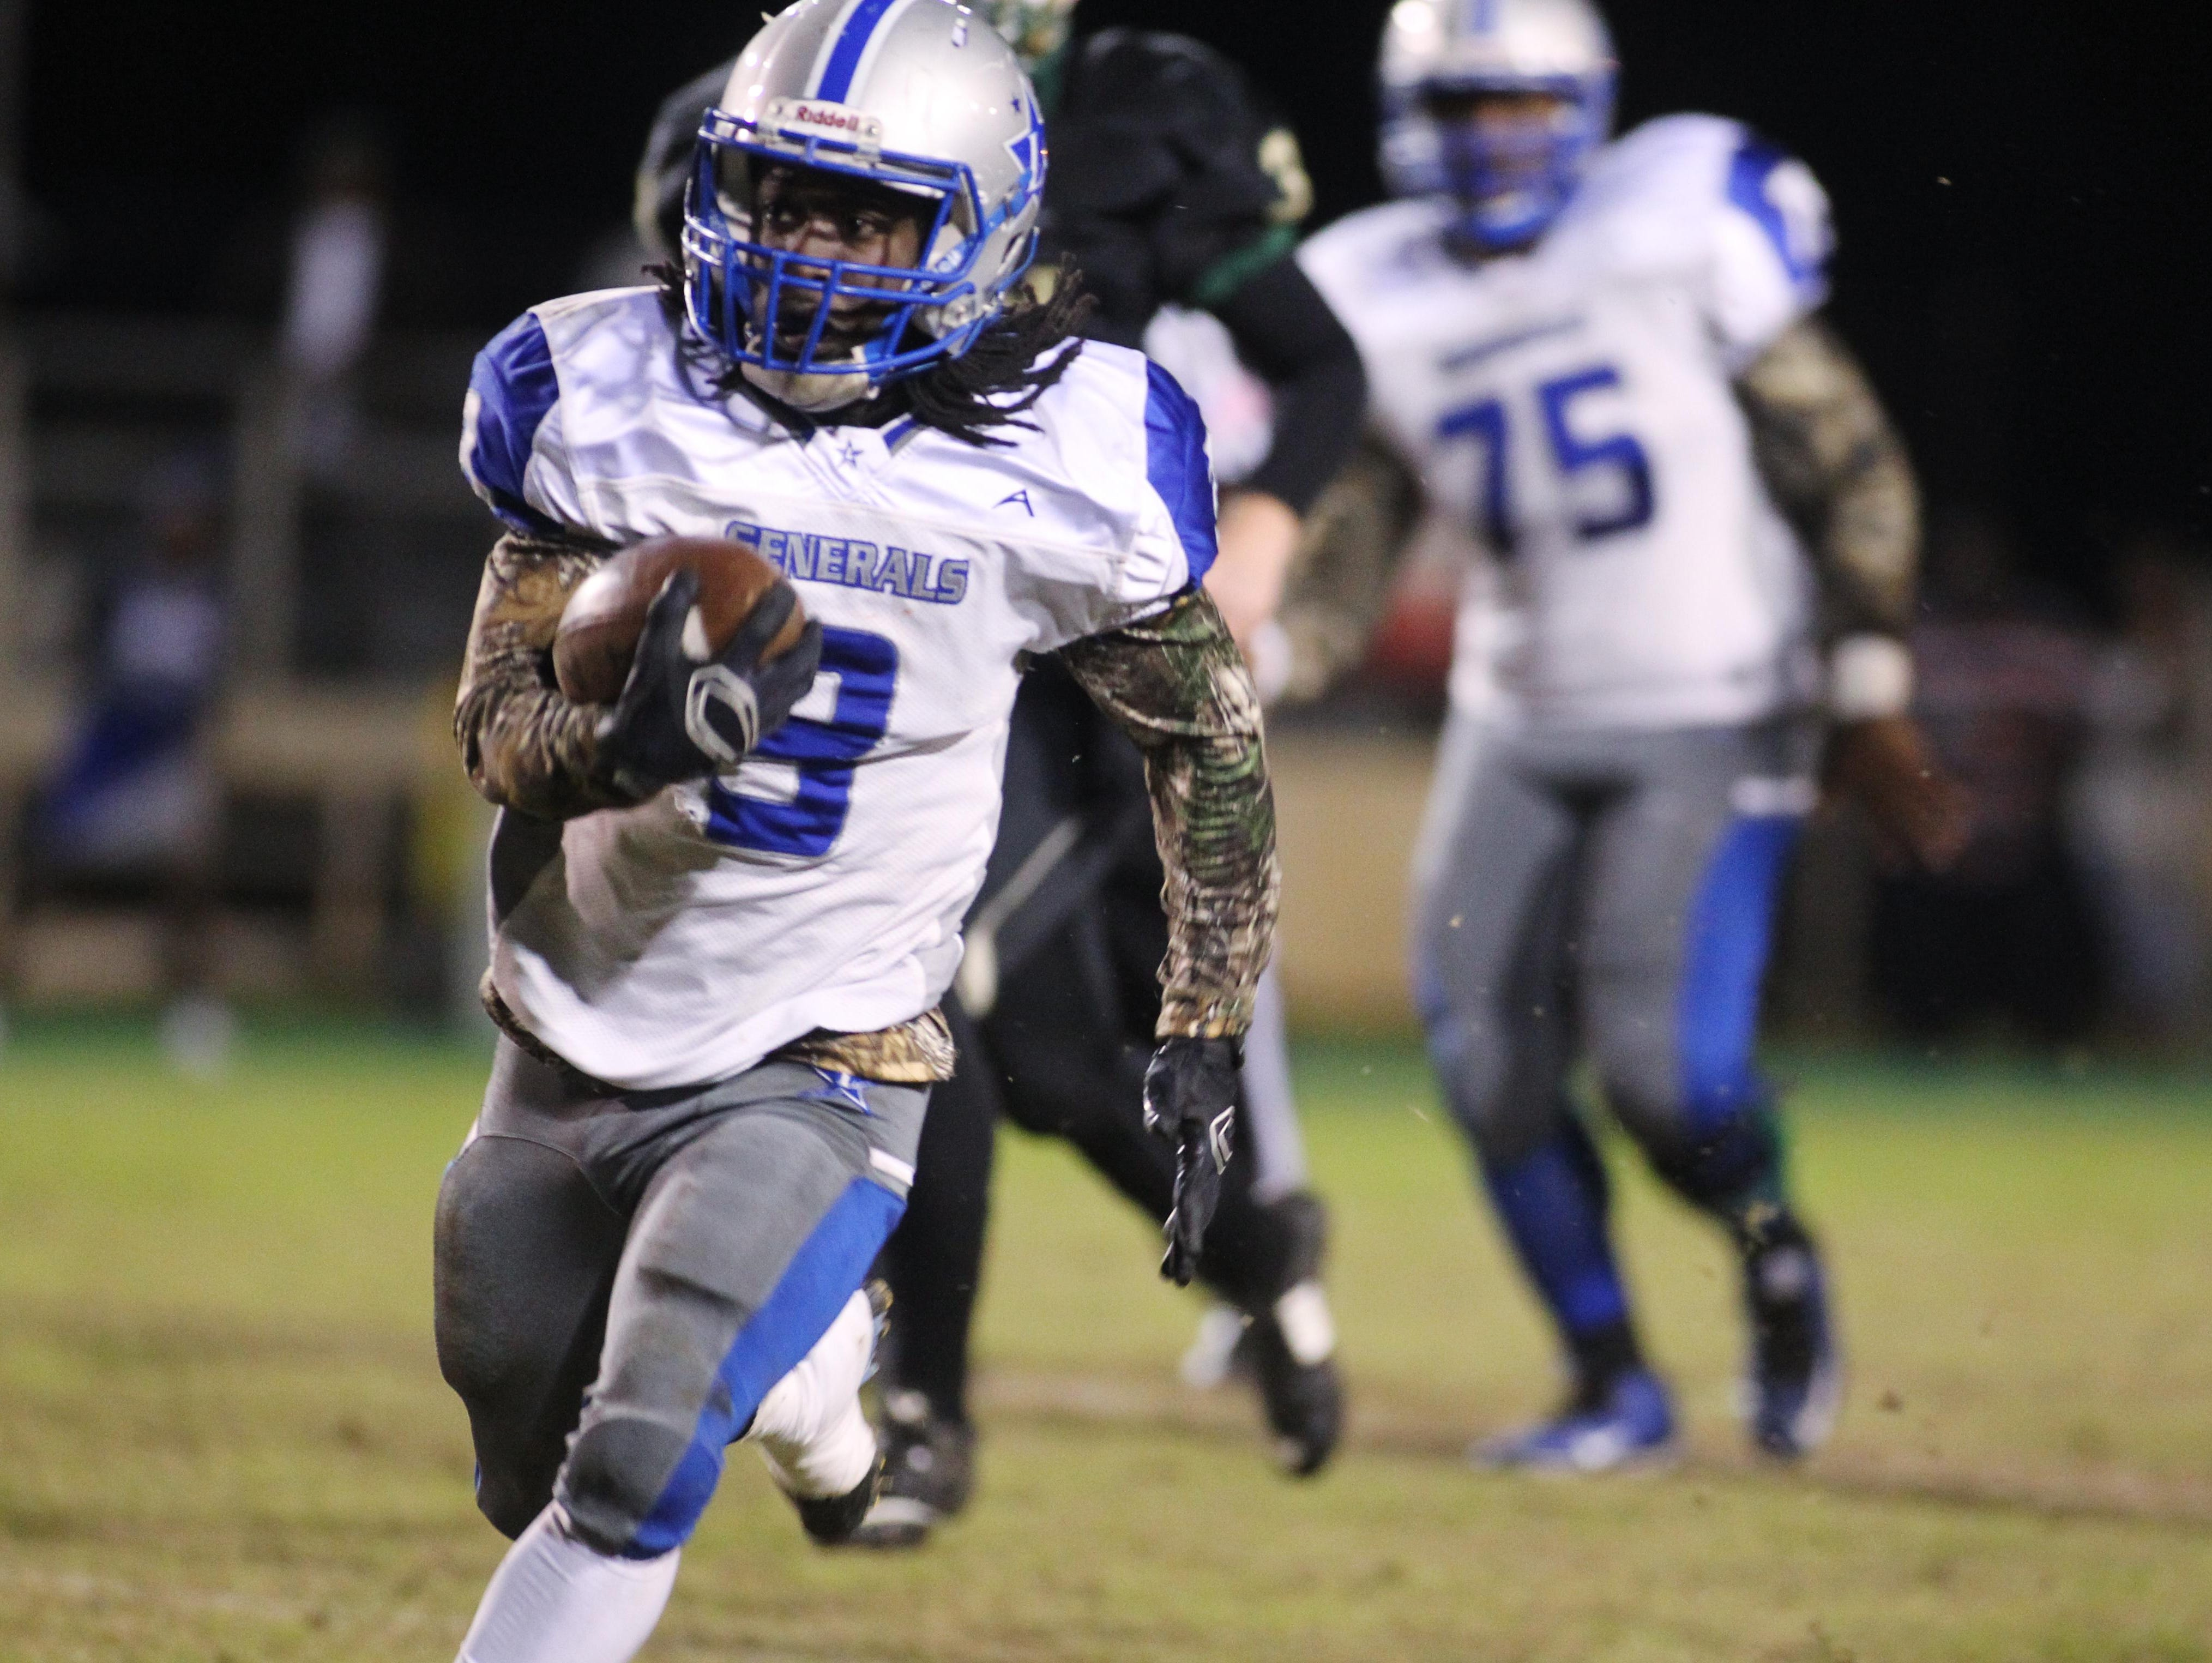 Lee running back Tony Belle rushed 25 times for 176 yards and a two touchdowns, while also catching a 19-yard touchdown pass, but the Generals fell to Lincoln 44-41 in overtime.